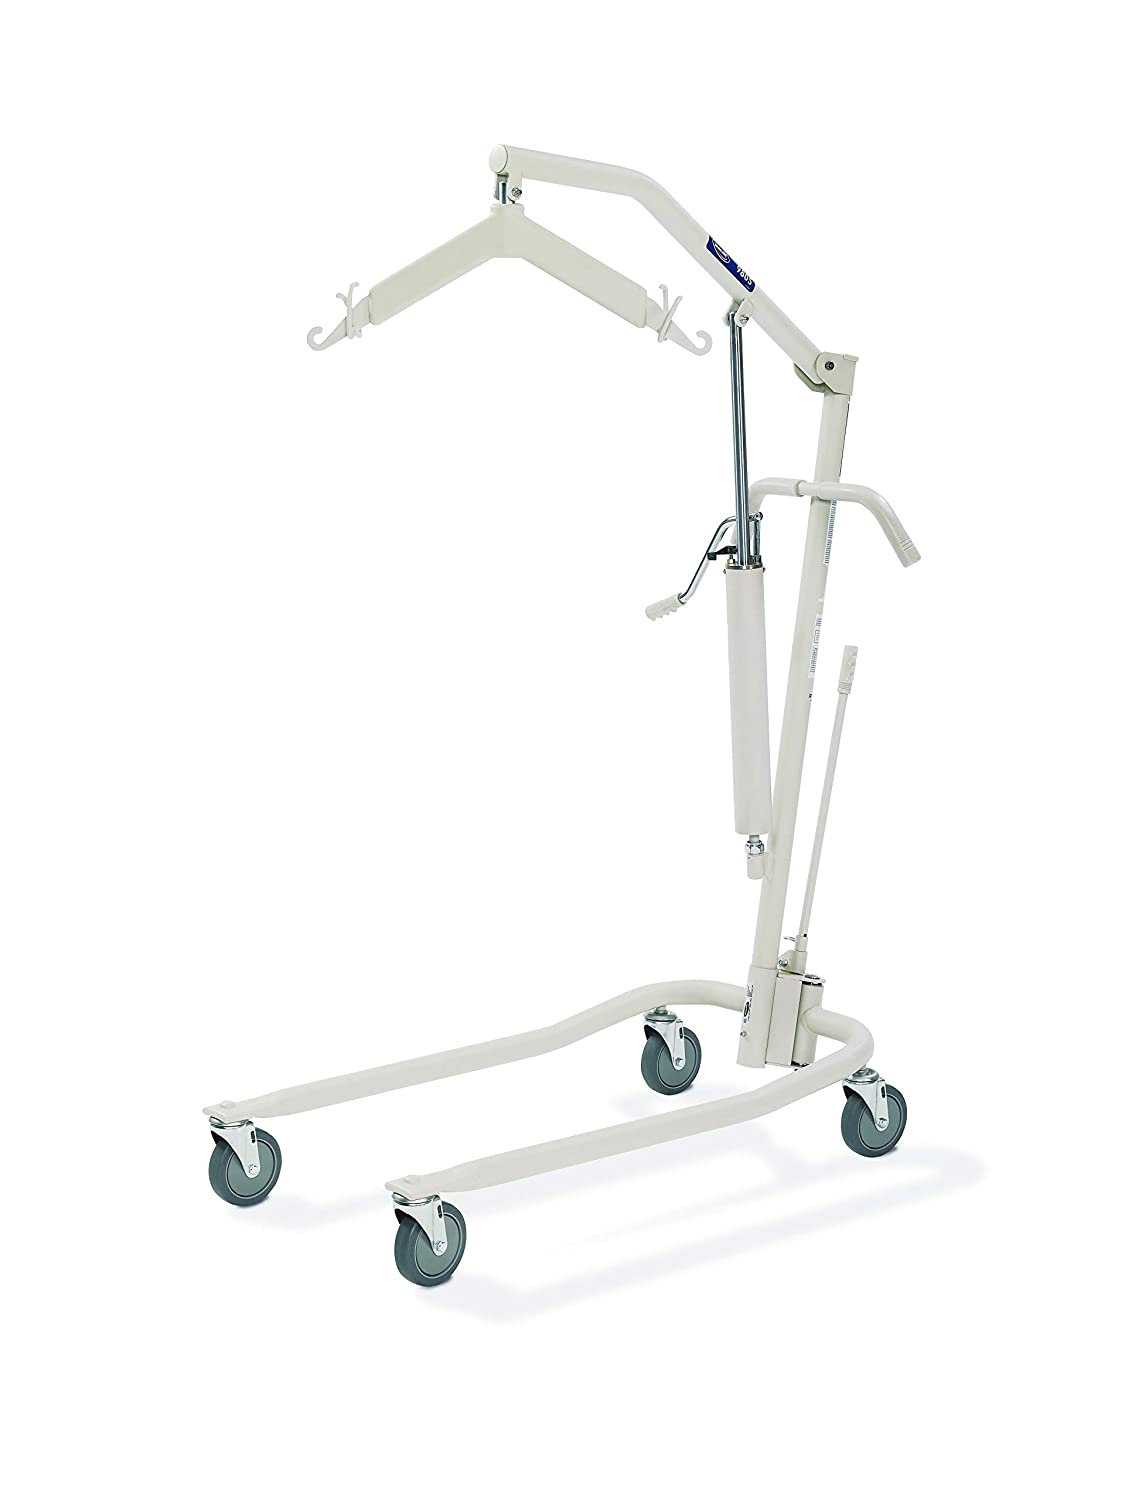 Invacare Painted Hydraulic Lift | 450 lbs. weight capacity | 9805P model